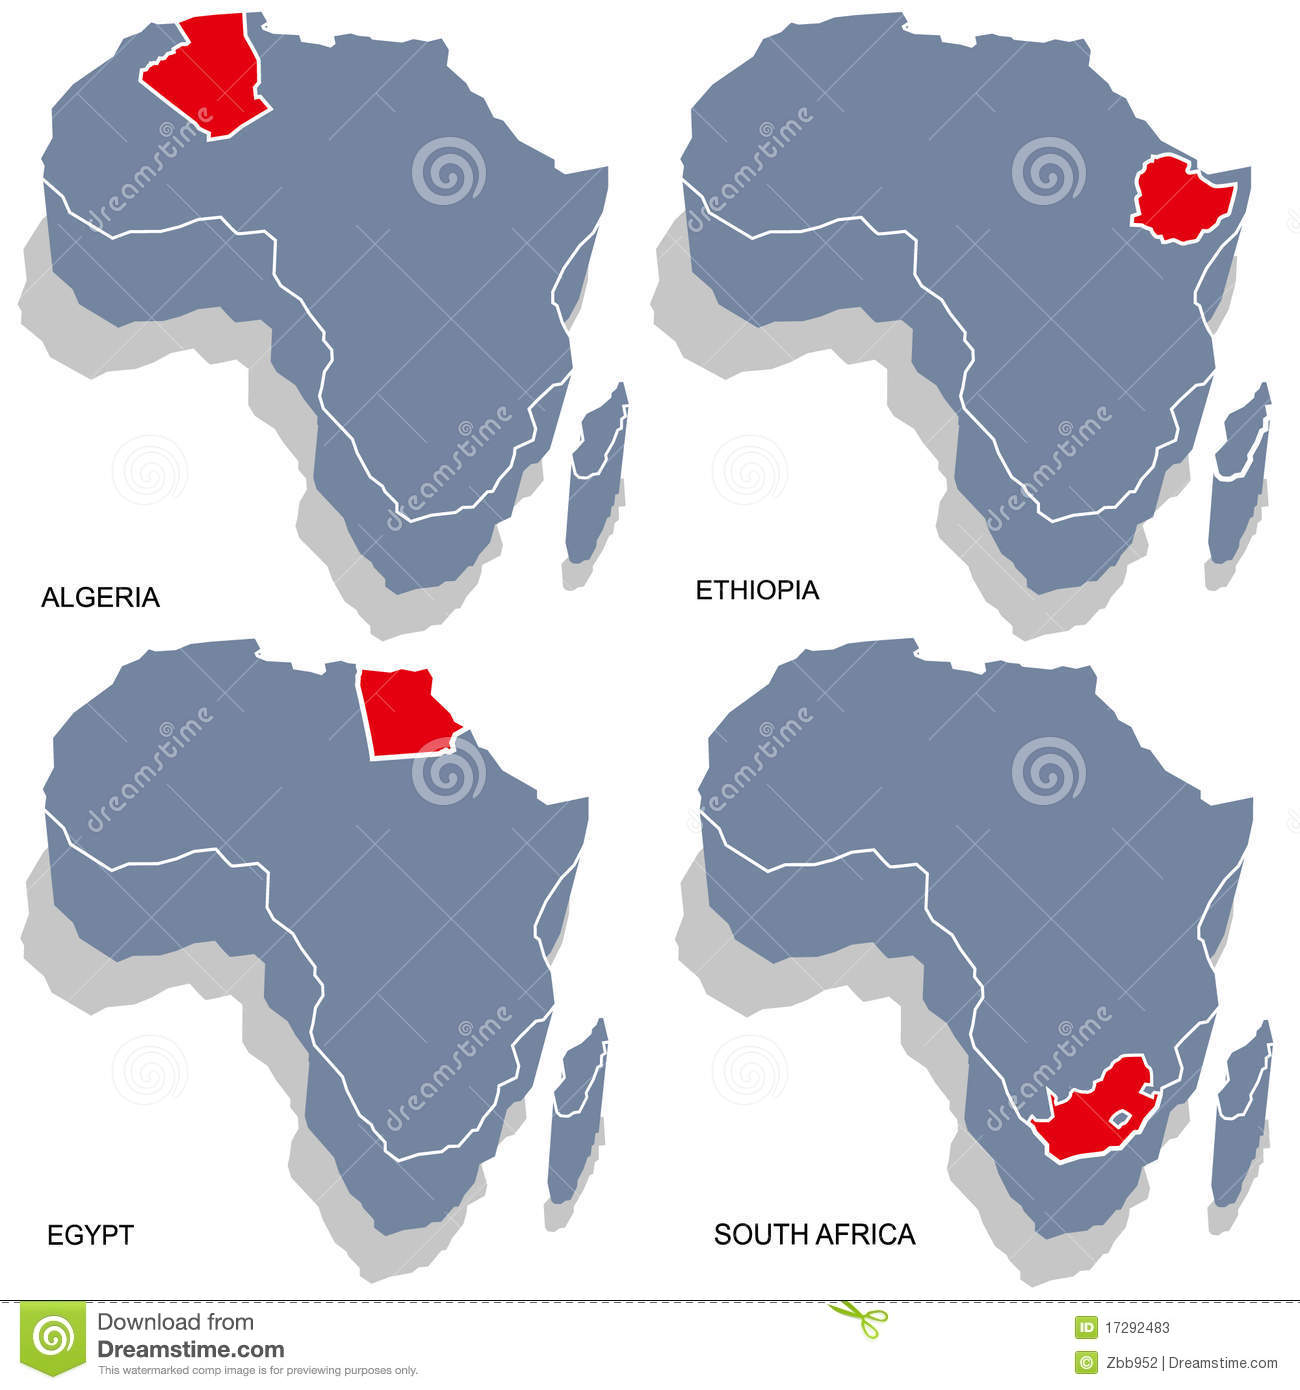 Map Of Africa 3d.Africa 3d Map Stock Vector Illustration Of Area Emblem 17292483